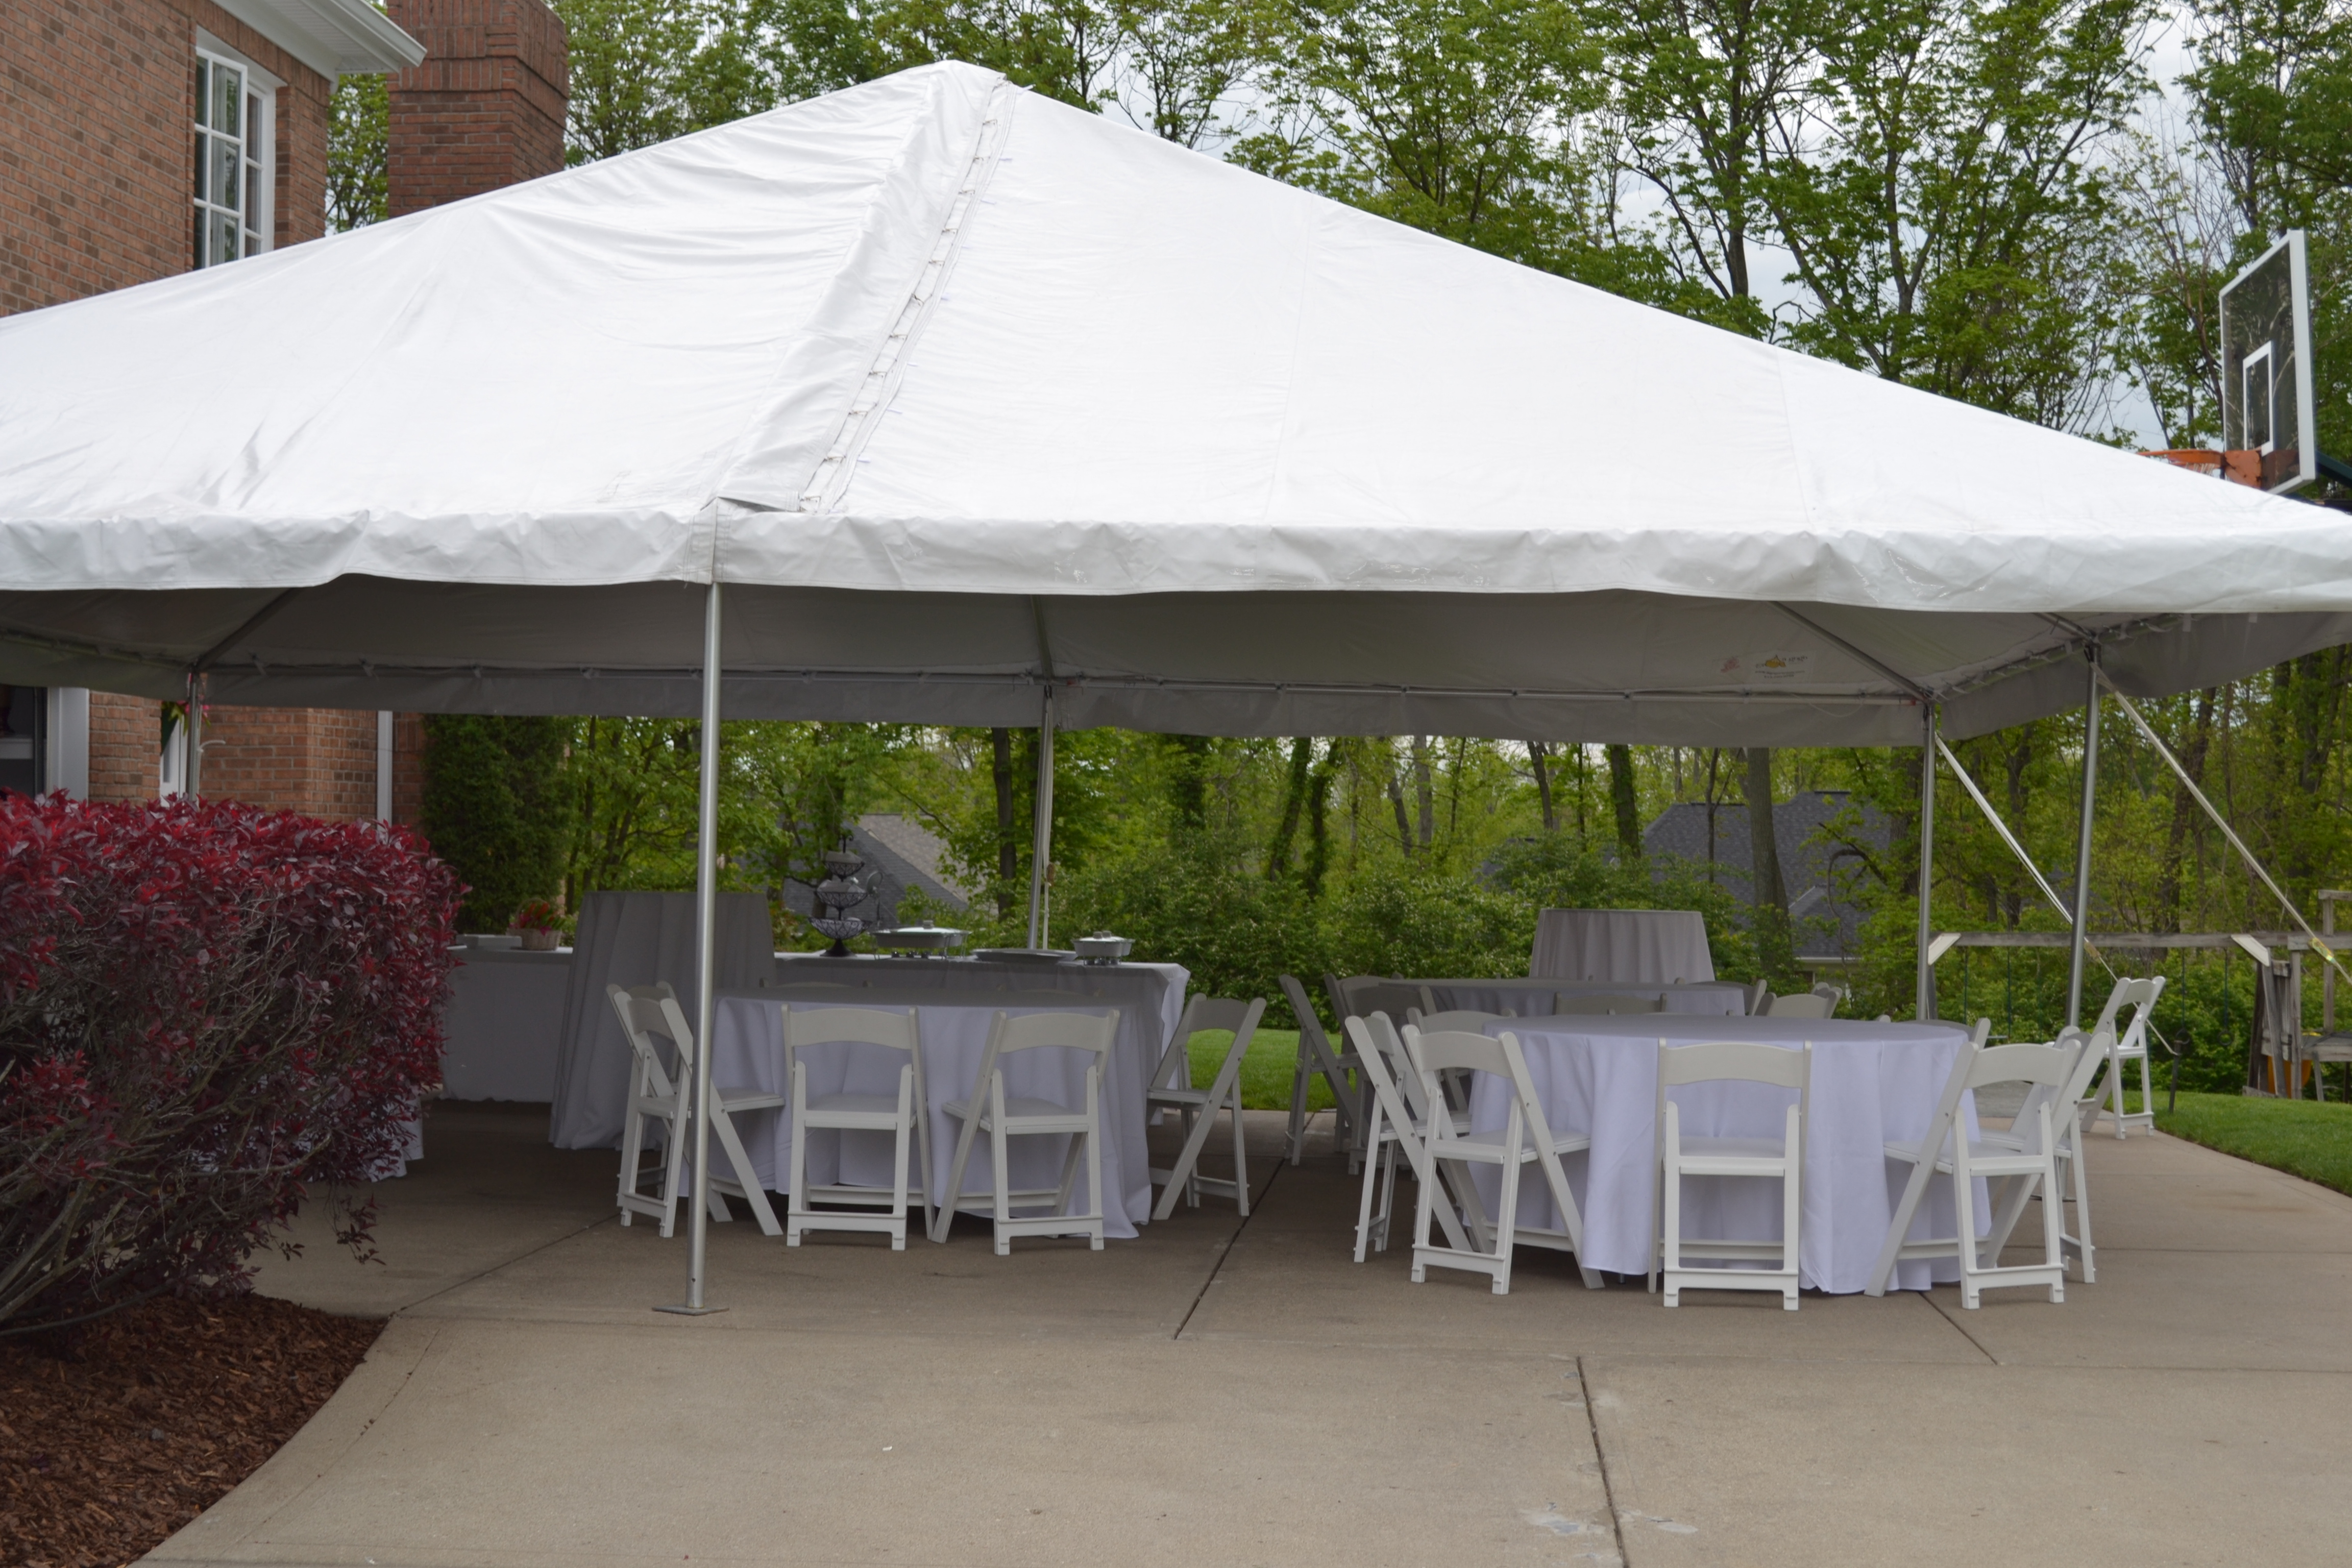 Leave ... & 20 x 20 frame tent - Uptown Rentals